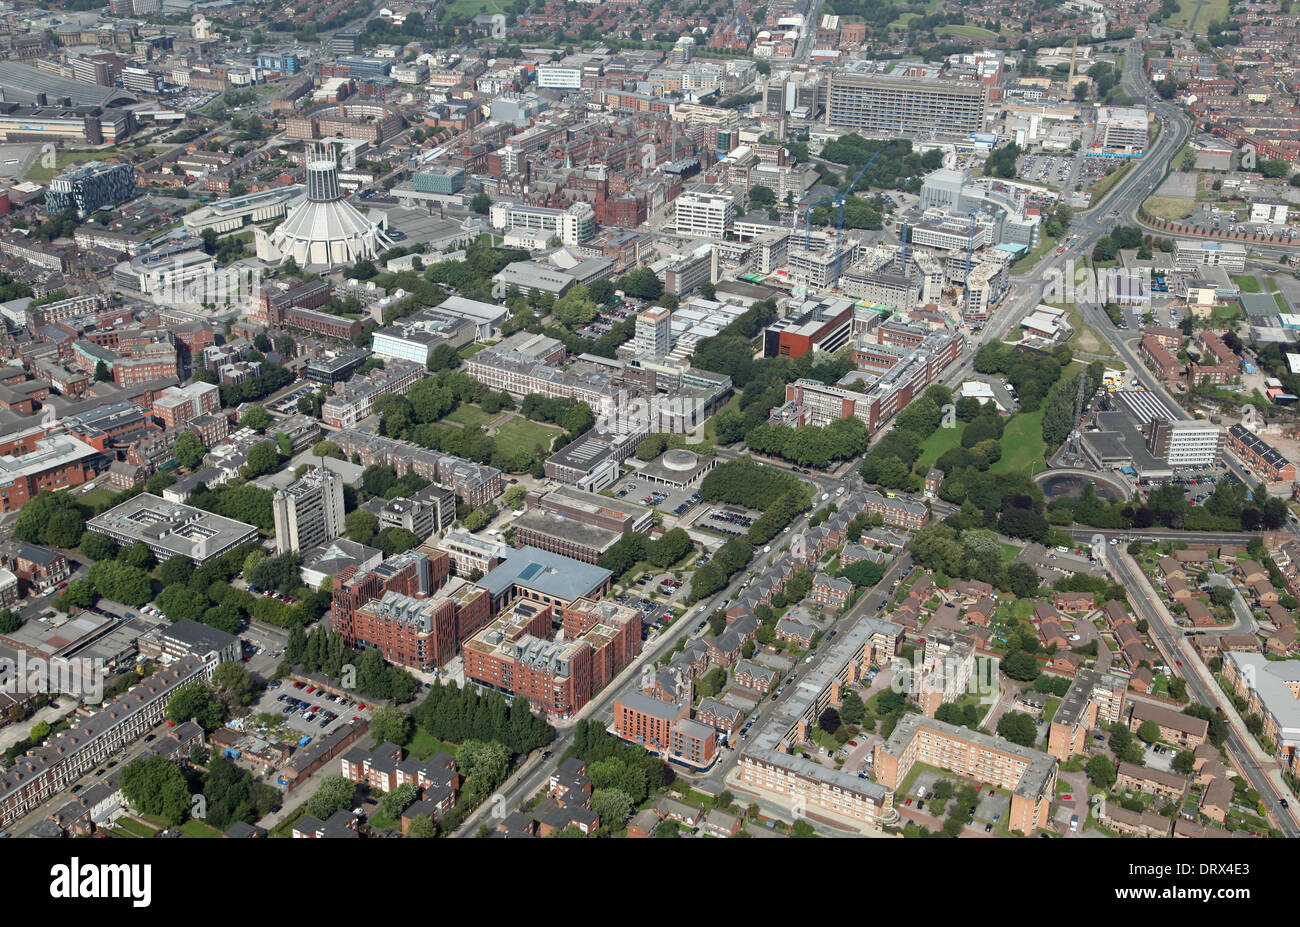 aerial view of the area west of Grove Street in Liverpool, including the University of Liverpool - Stock Image